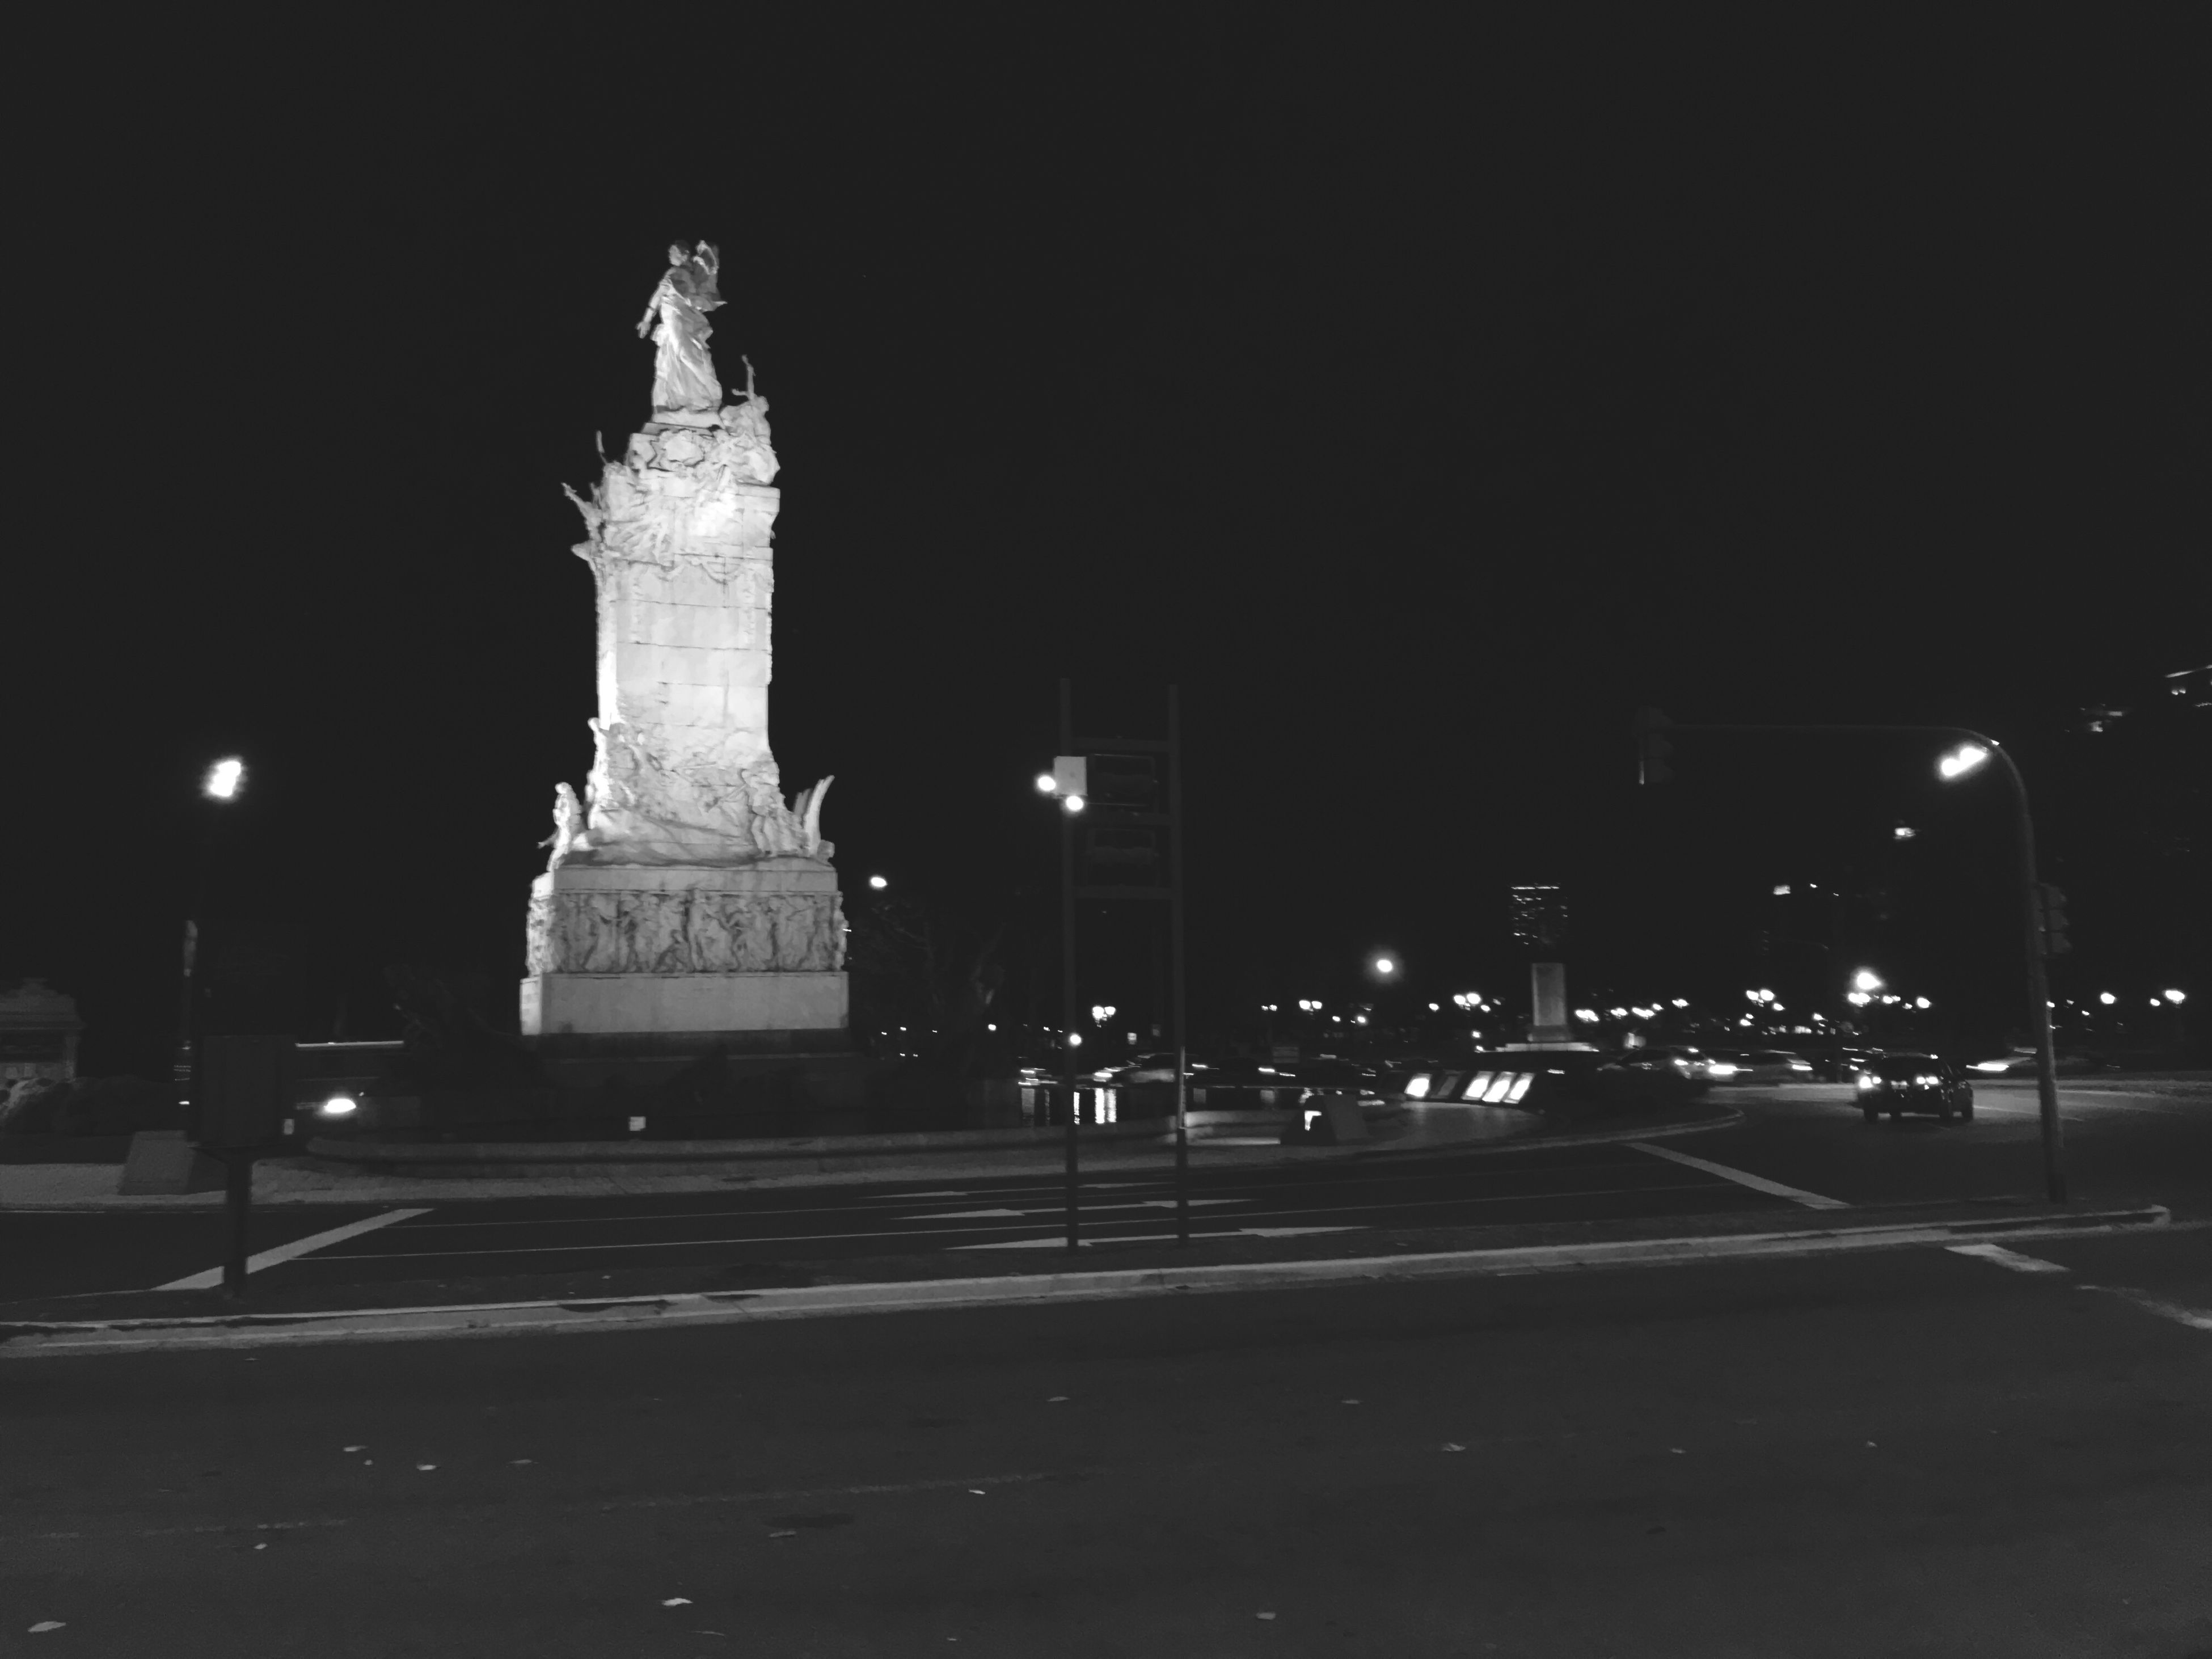 night, illuminated, building exterior, architecture, built structure, transportation, street, road, street light, car, clear sky, city, famous place, travel, statue, travel destinations, sky, history, copy space, sculpture